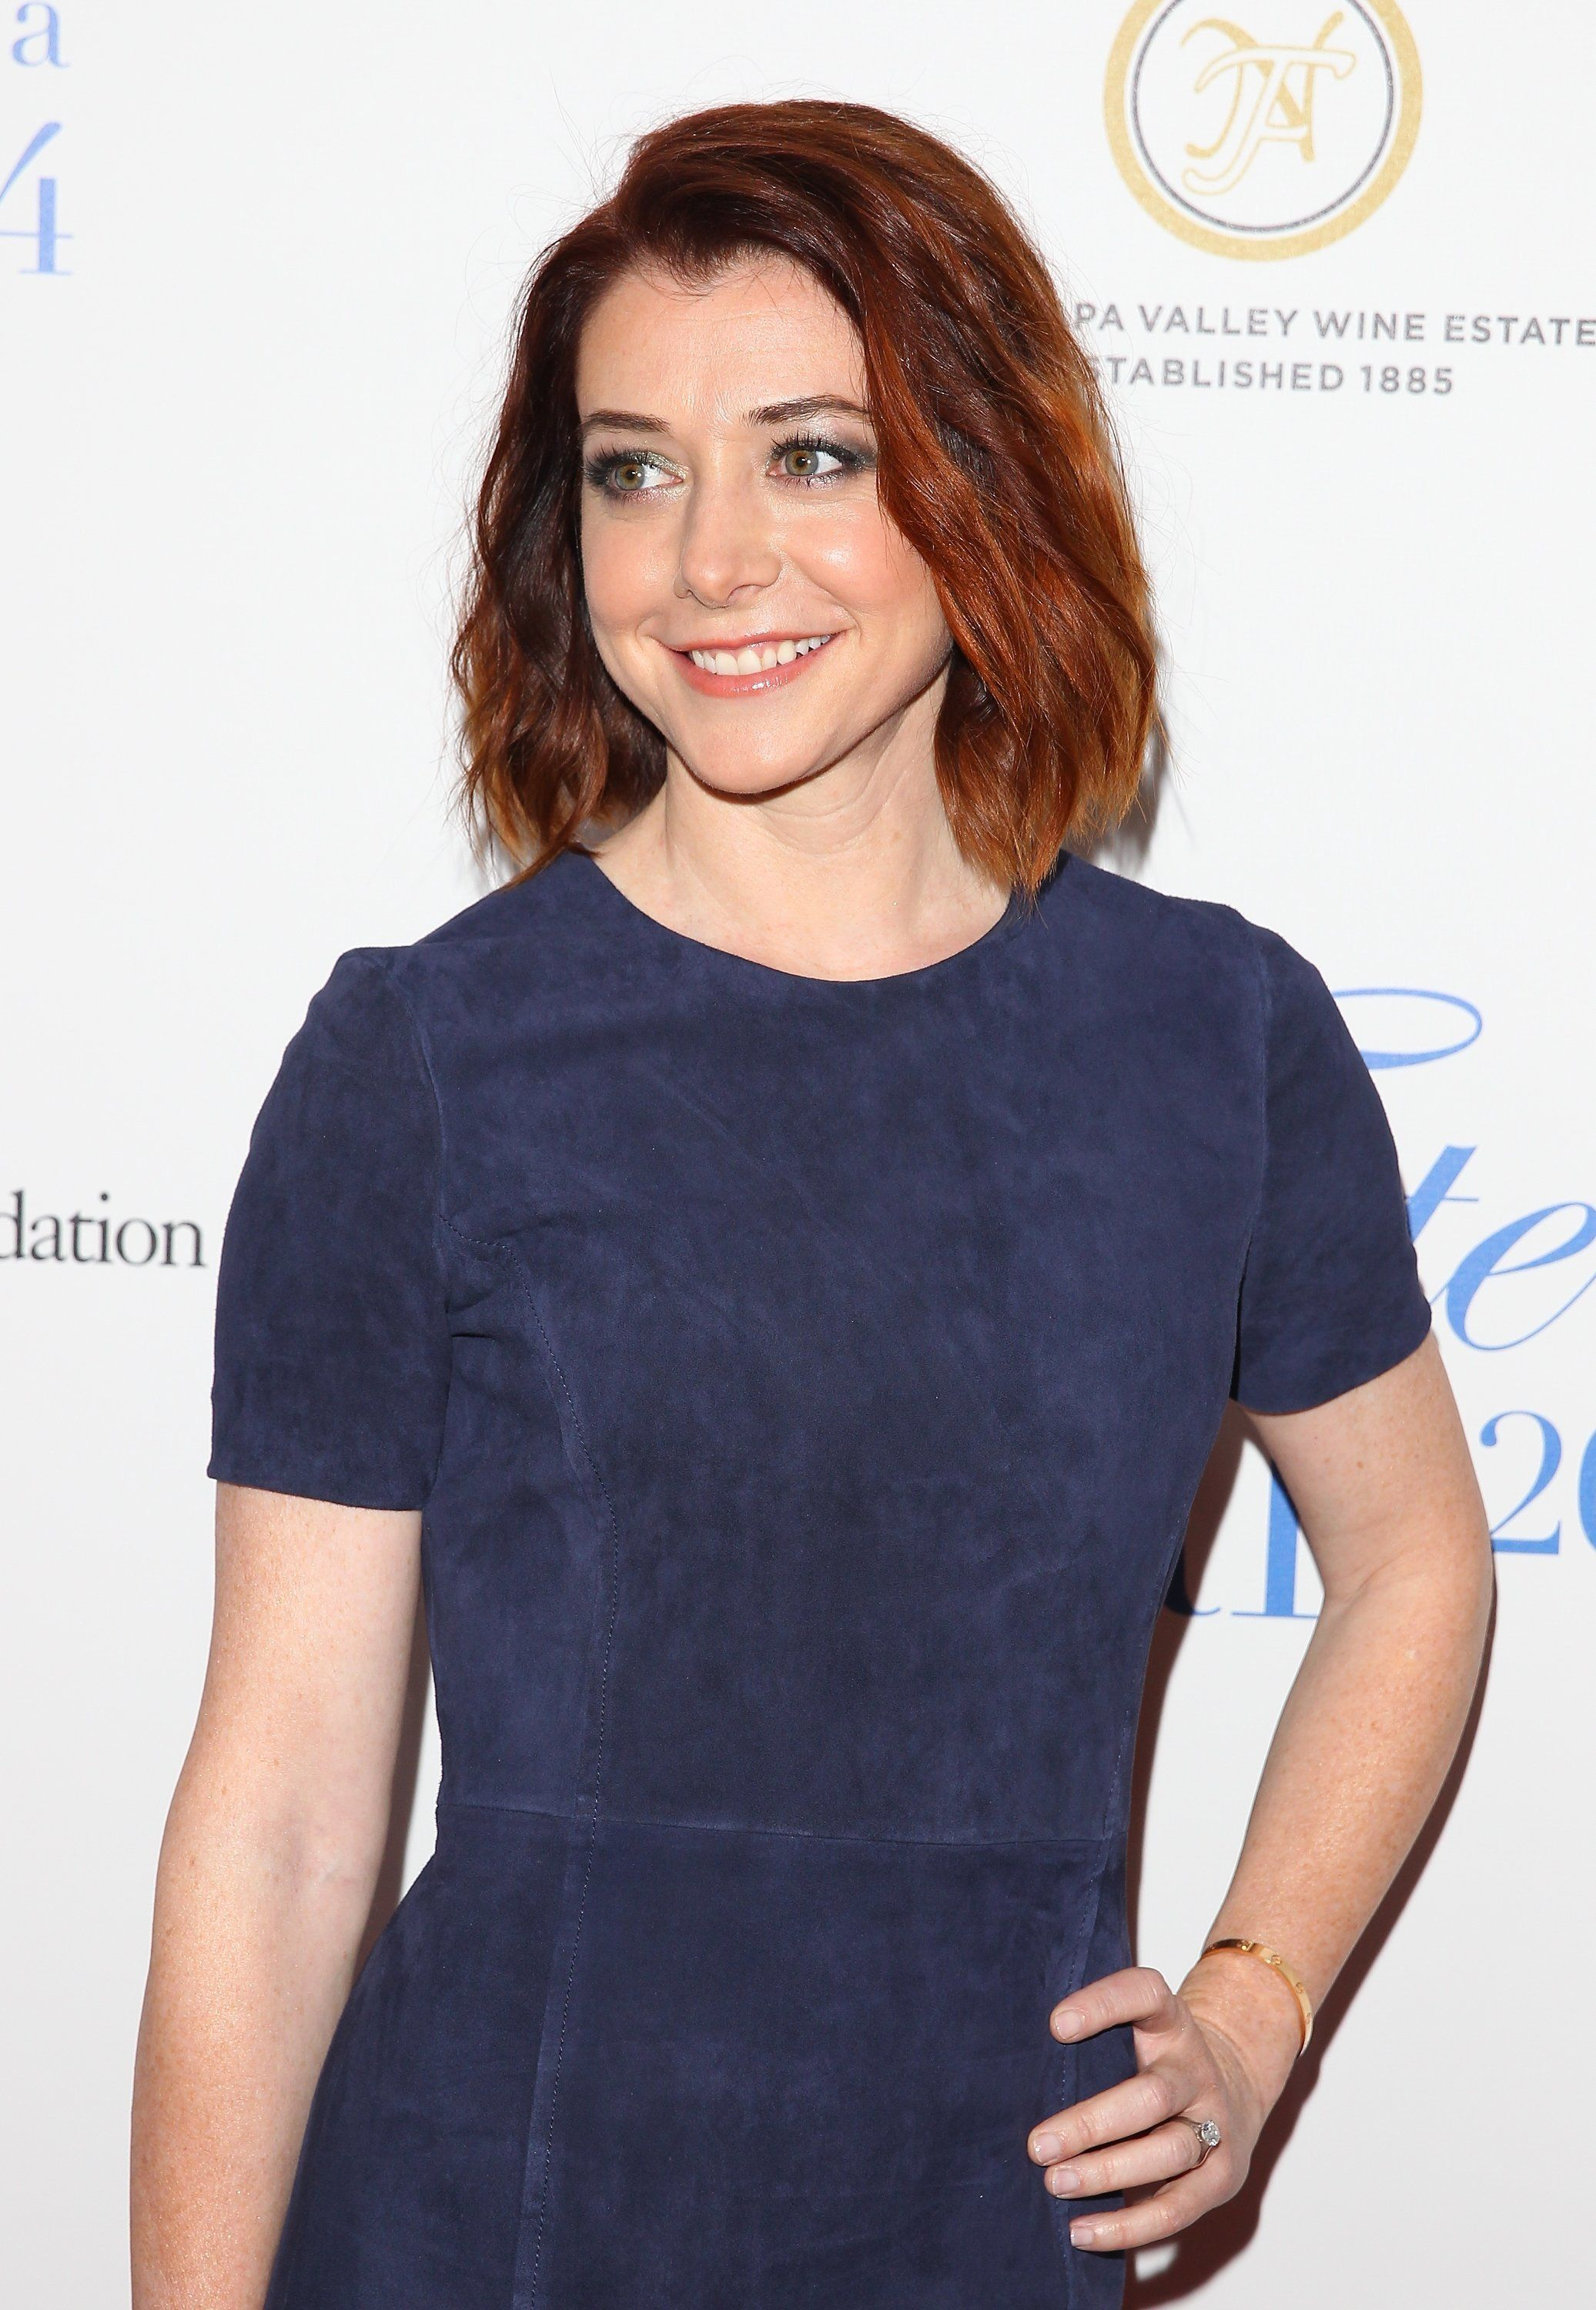 Alyson Hannigan has two daughters with her husband Alexis Denisof.